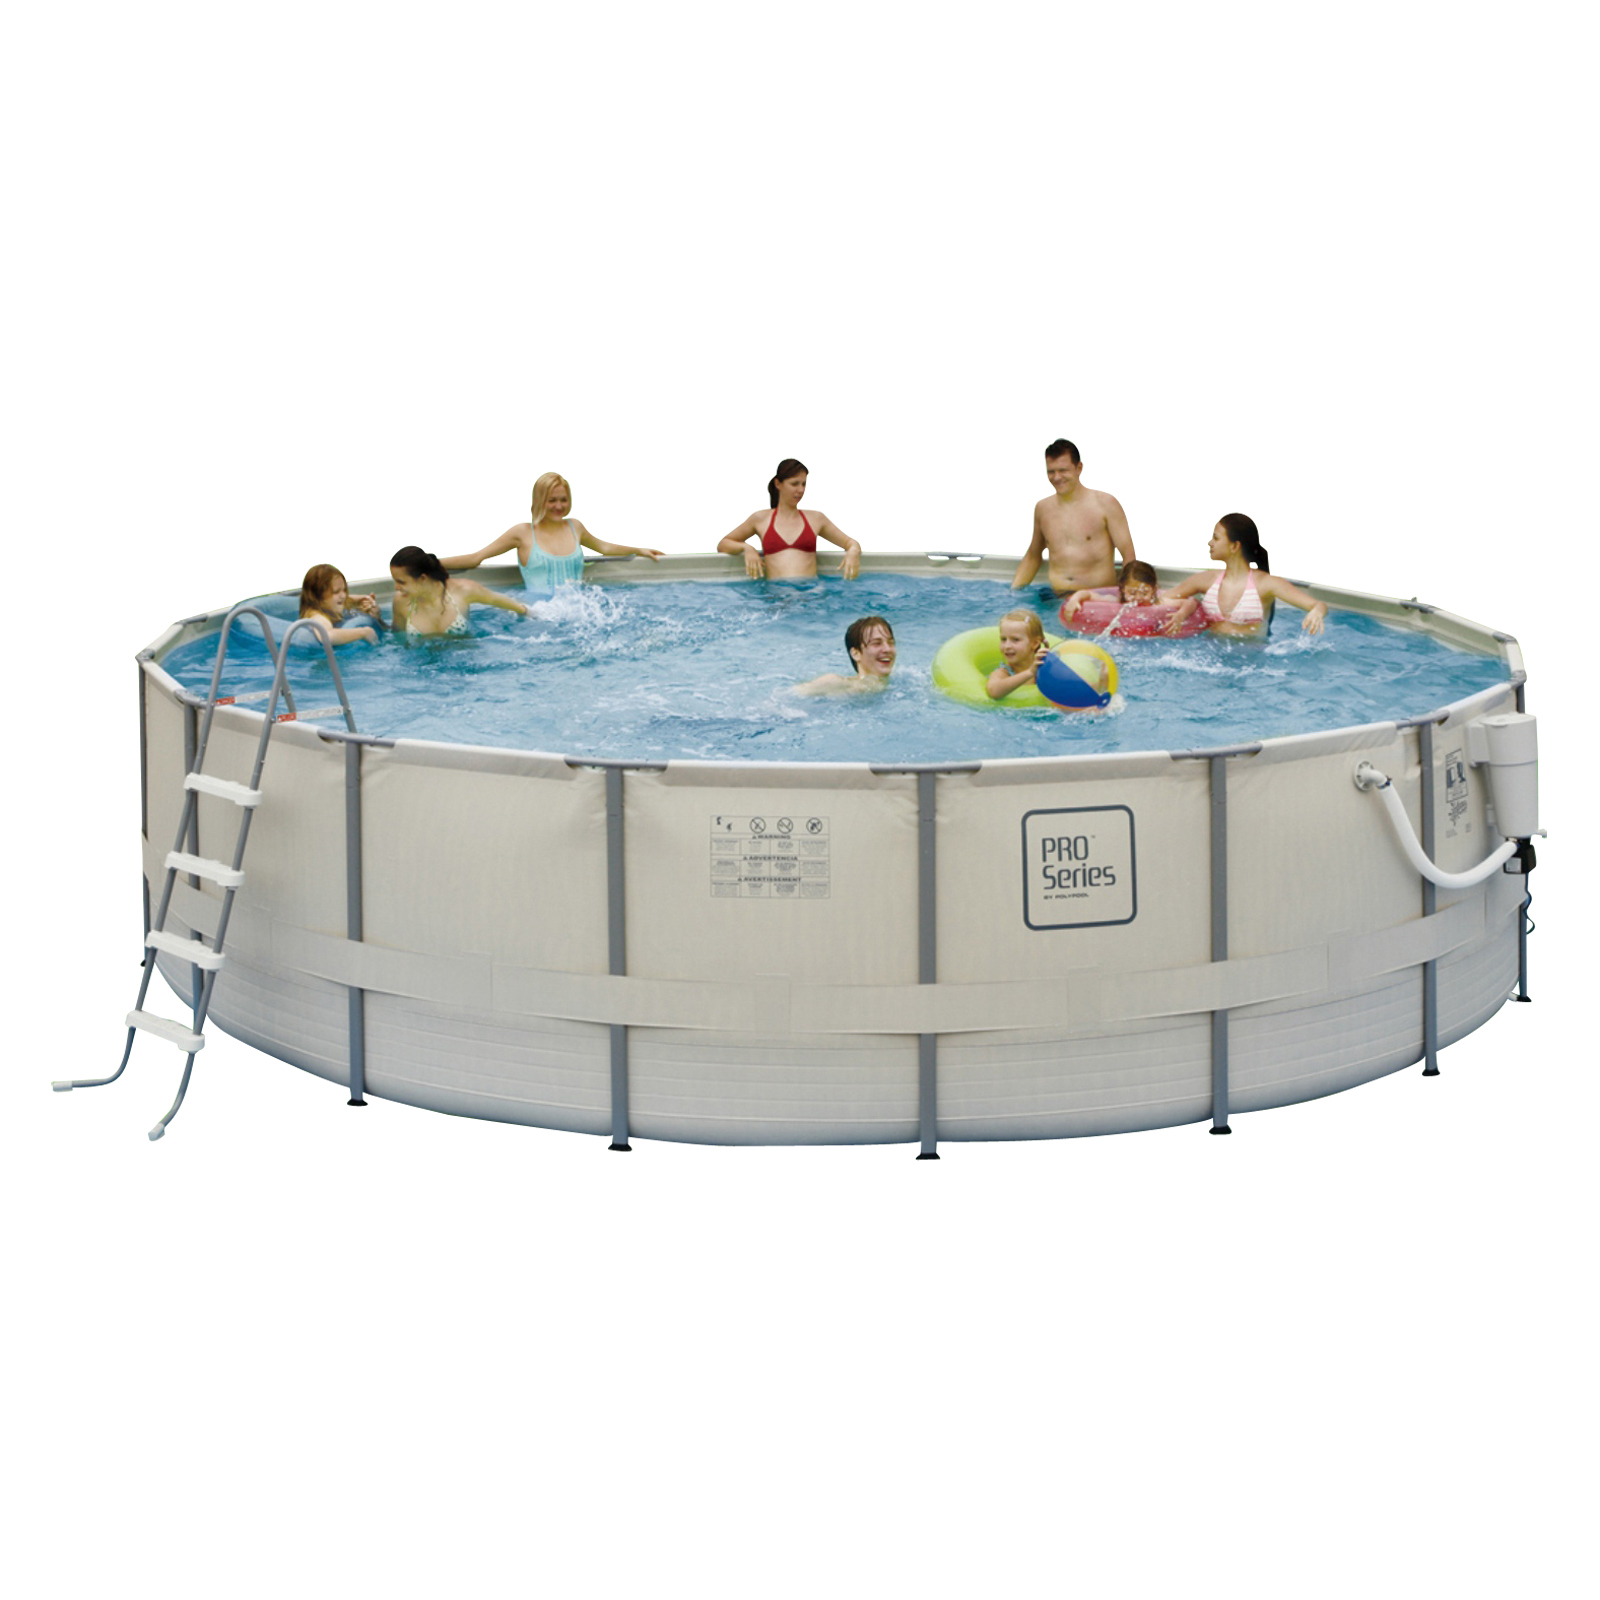 Blue wave pro series metal frame pool package swimming - Pro series frame pool ...